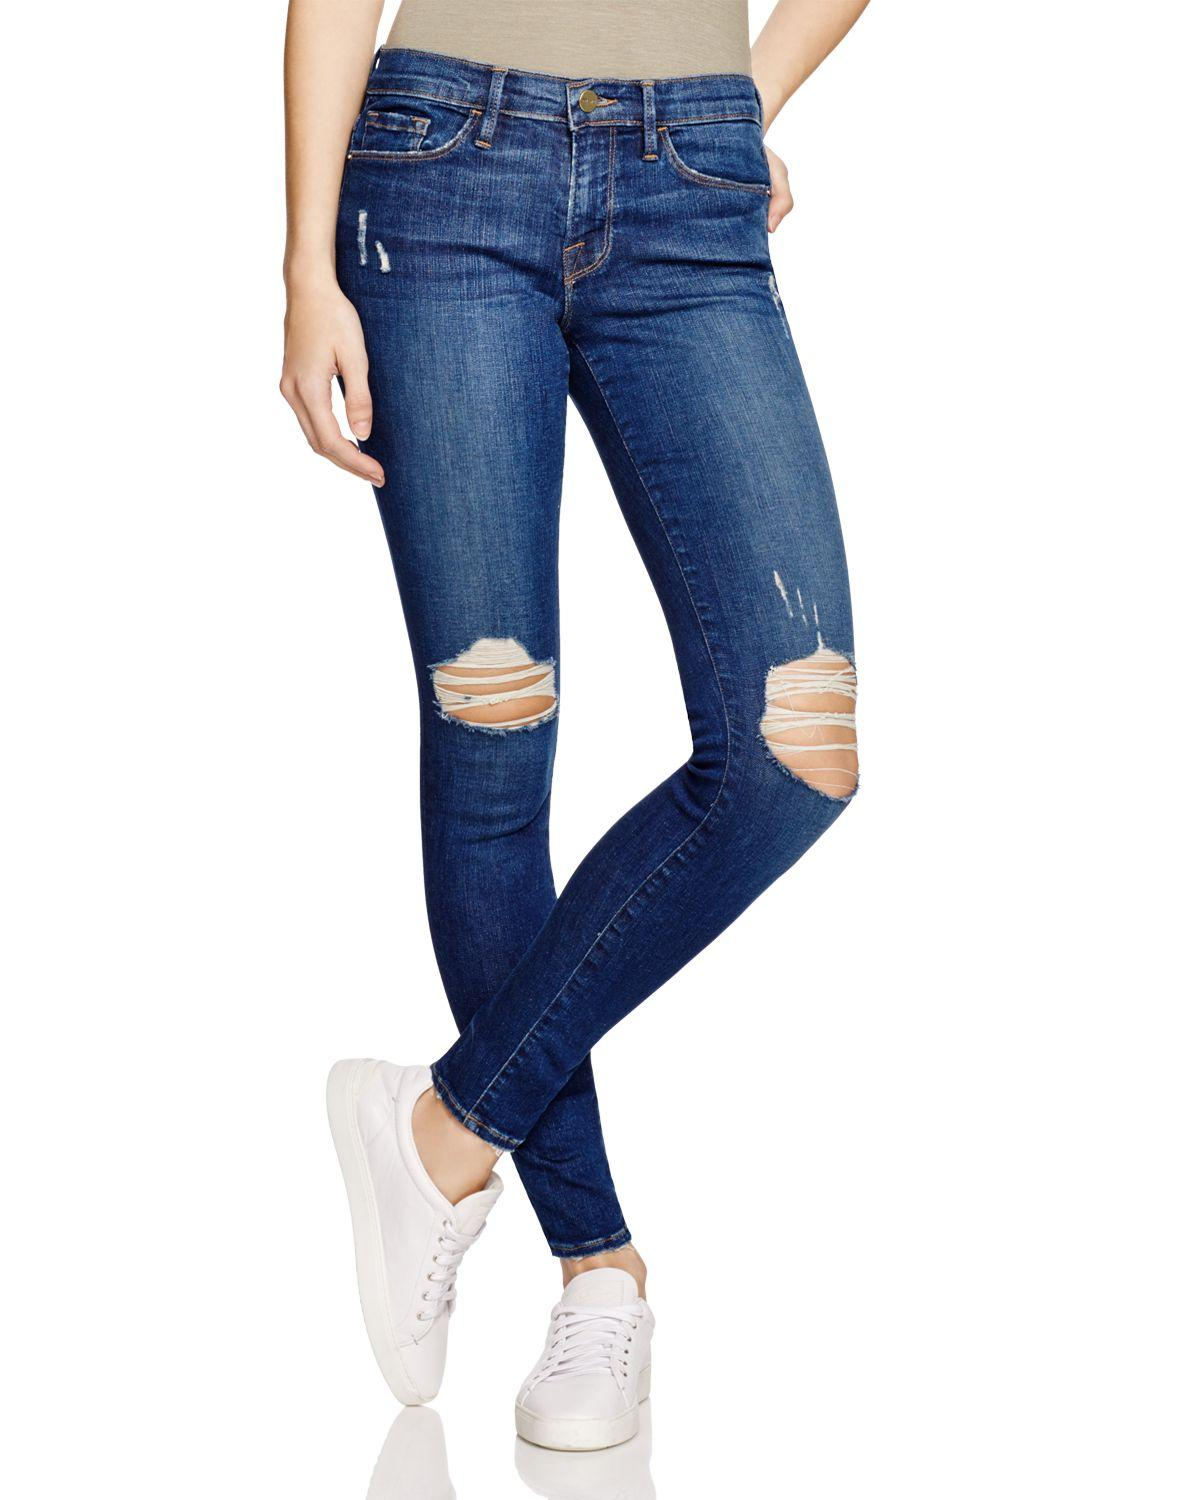 Exclusive Denim Adidas Top Ten 2000 Swaggy P Pes For: Frame Le Skinny Jeans In Bleecker